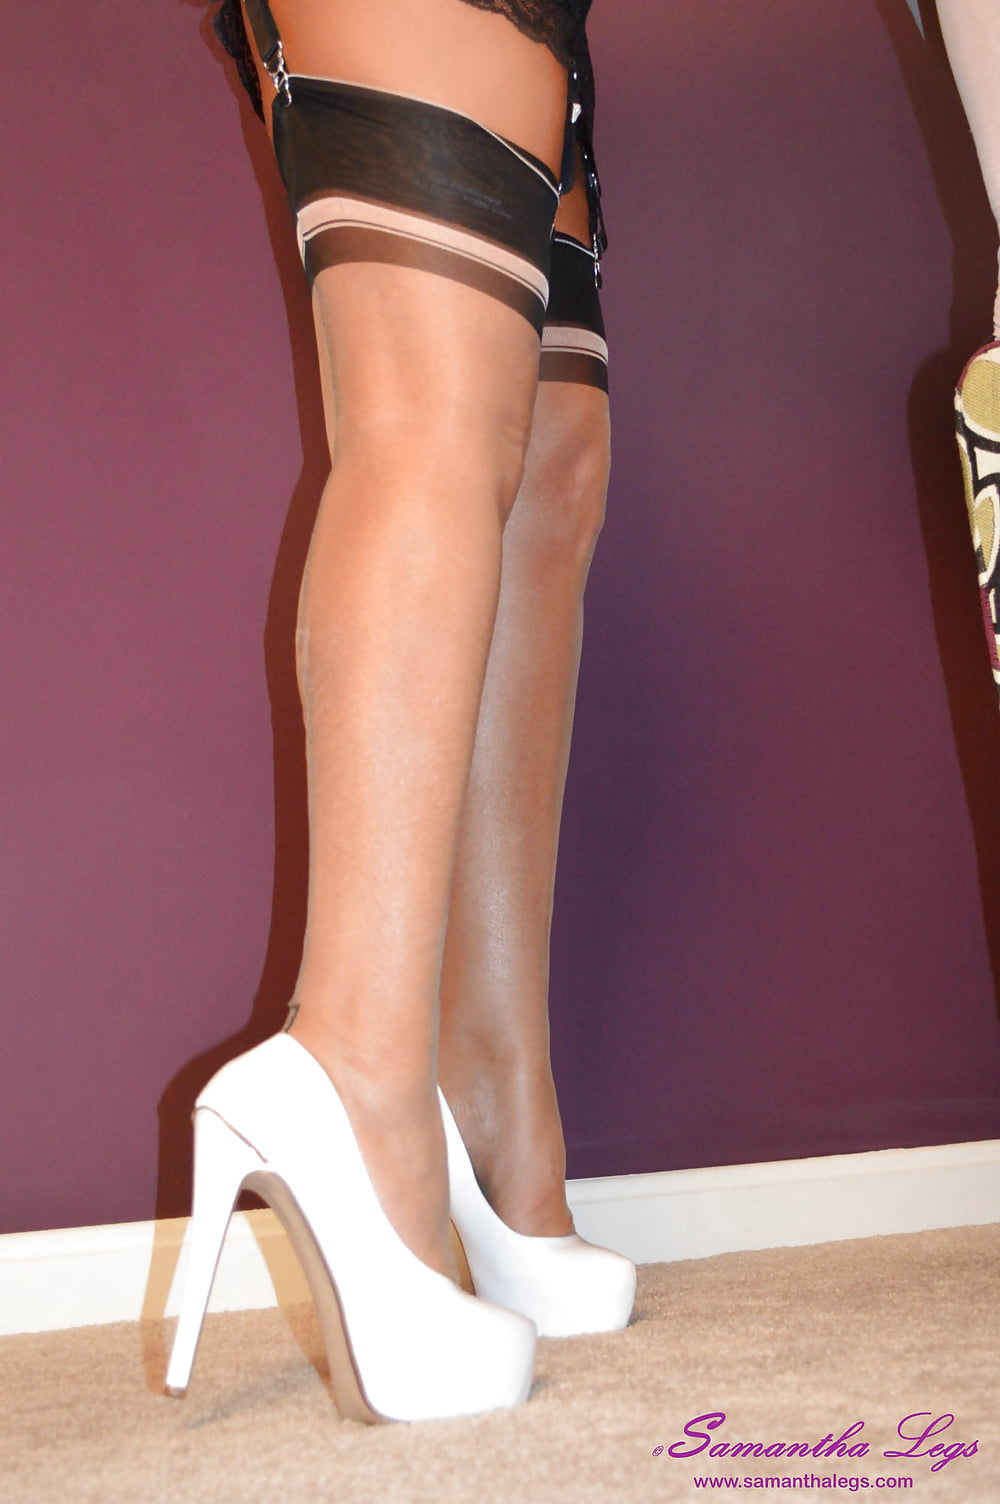 Sexy heels and hose pics